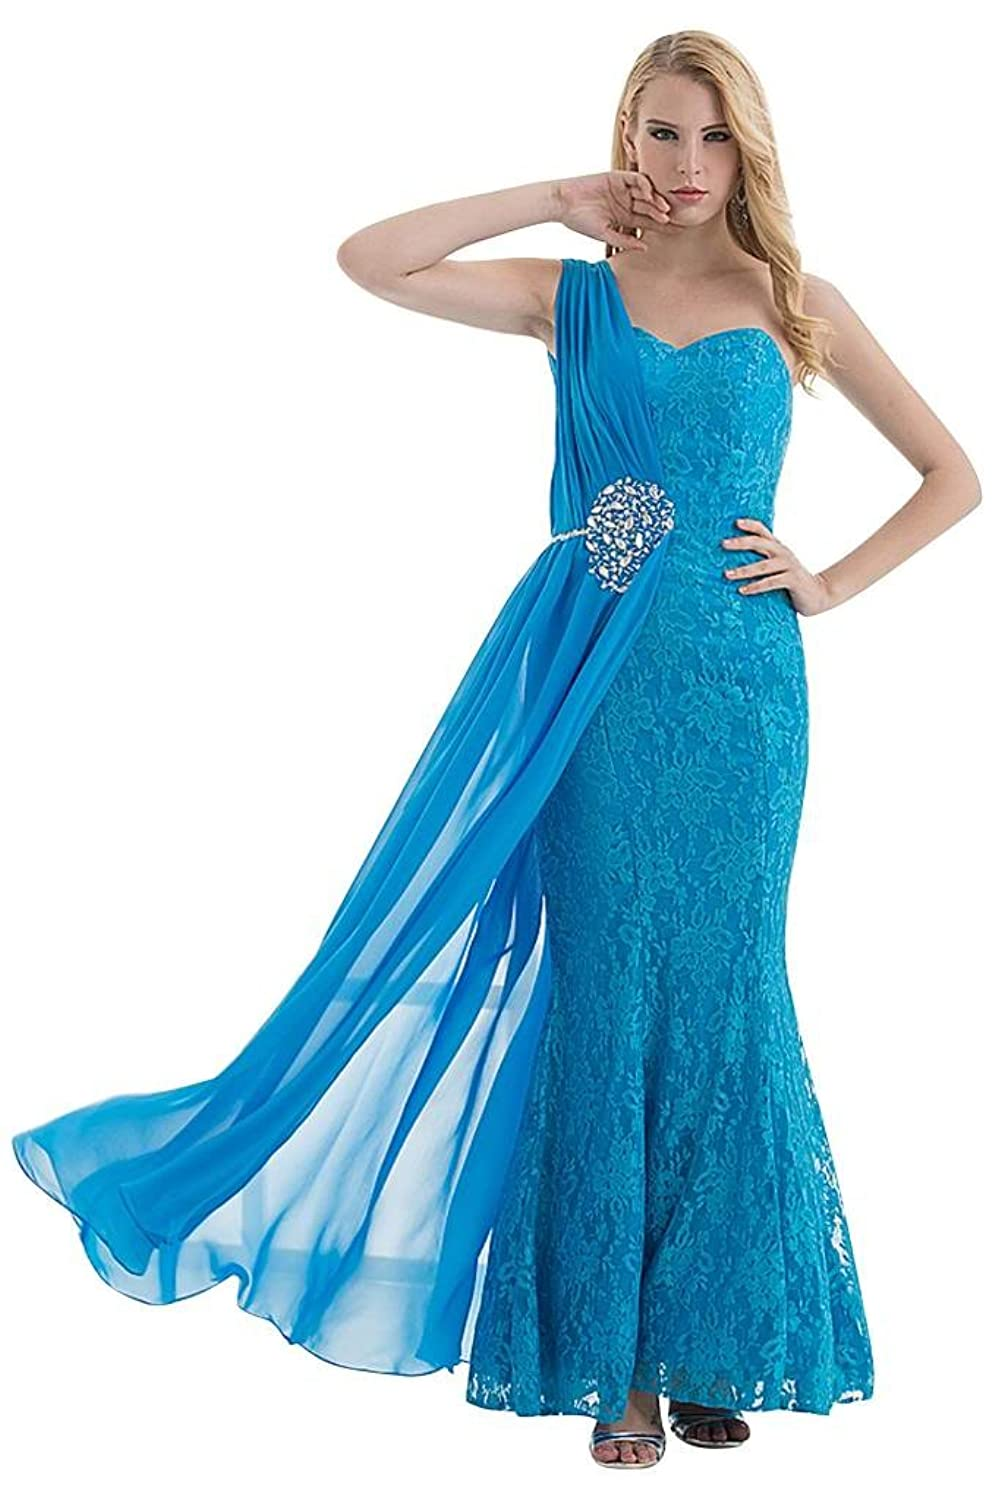 GEORGE BRIDE Exotic One-Shoulder Full Lace Beaded Long Dress